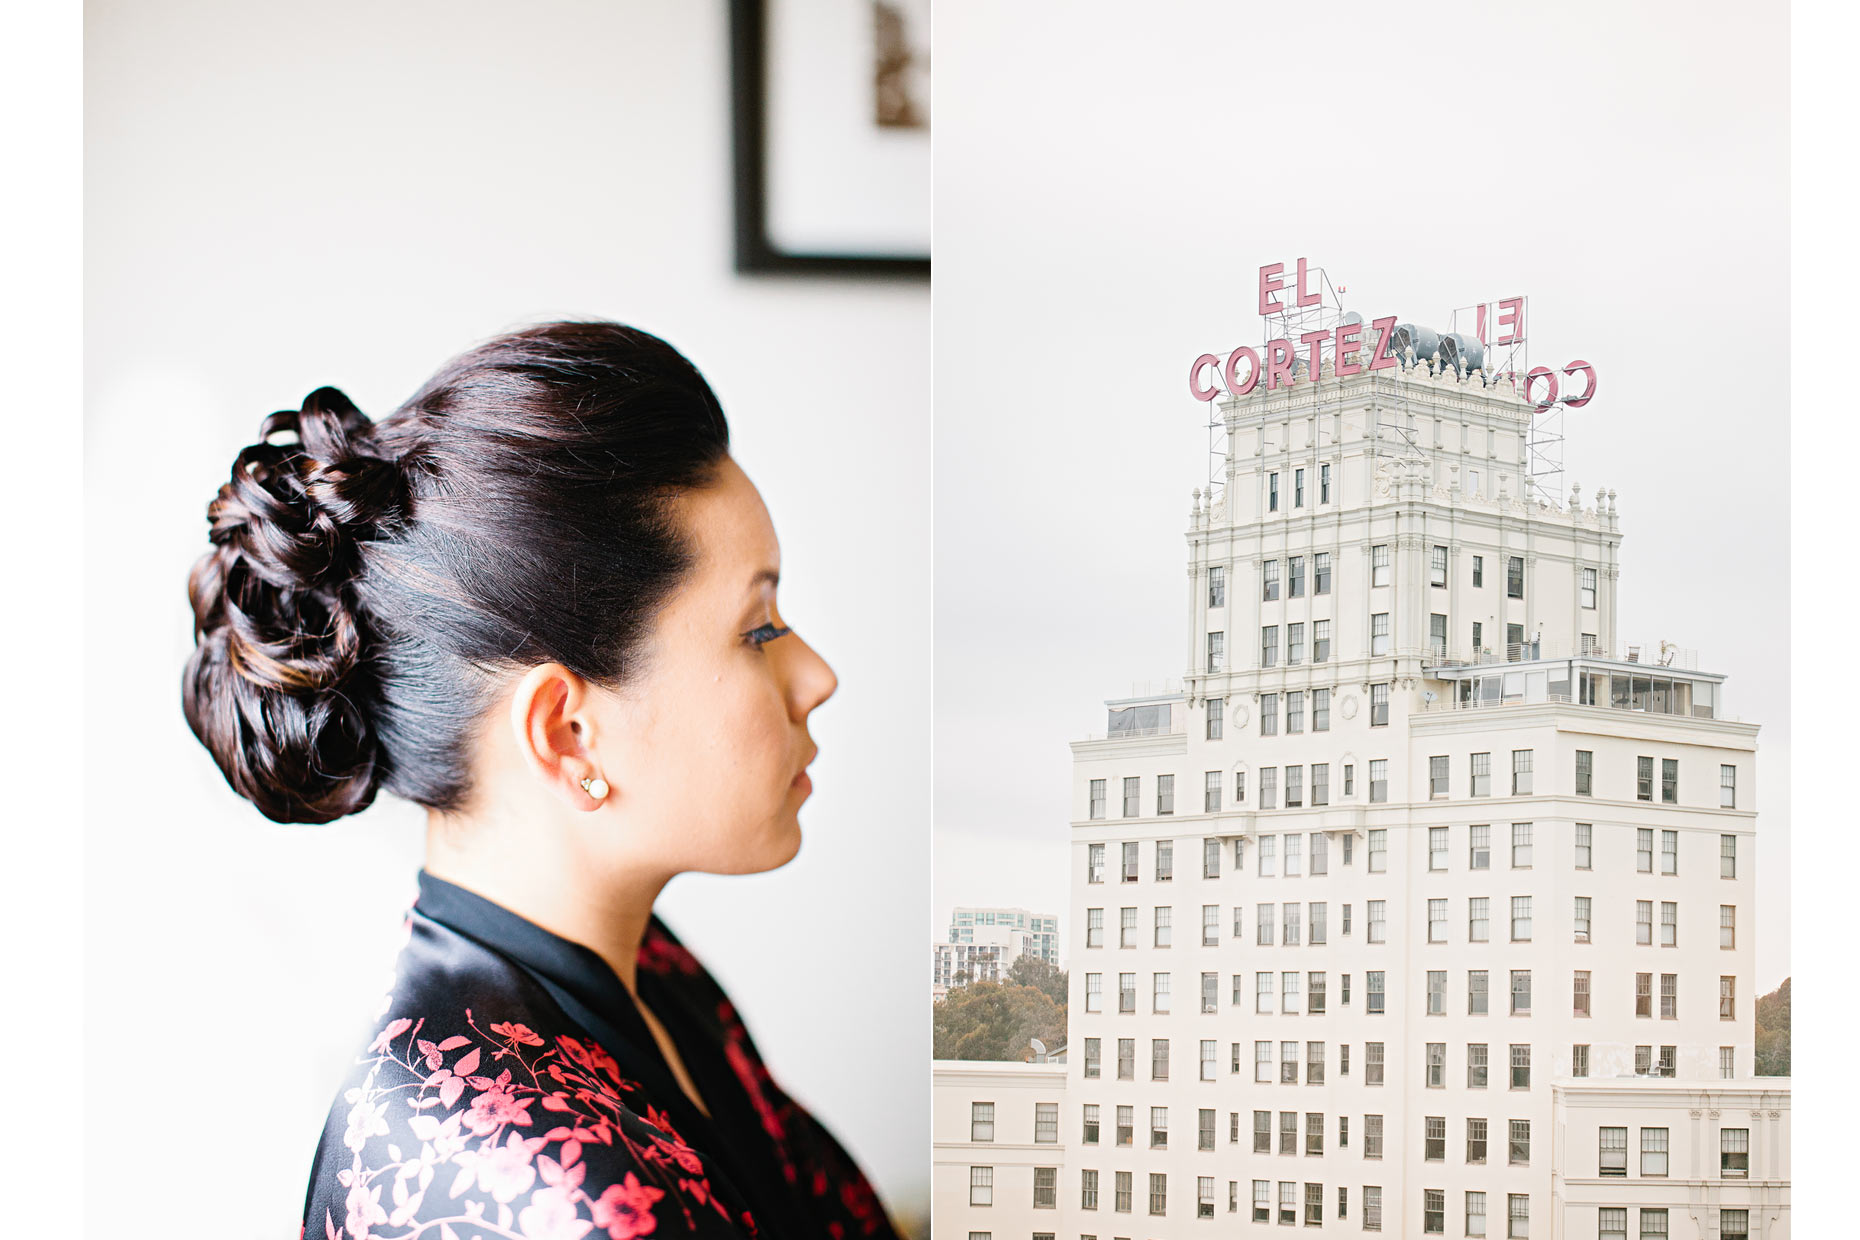 El Cortez wedding photographer